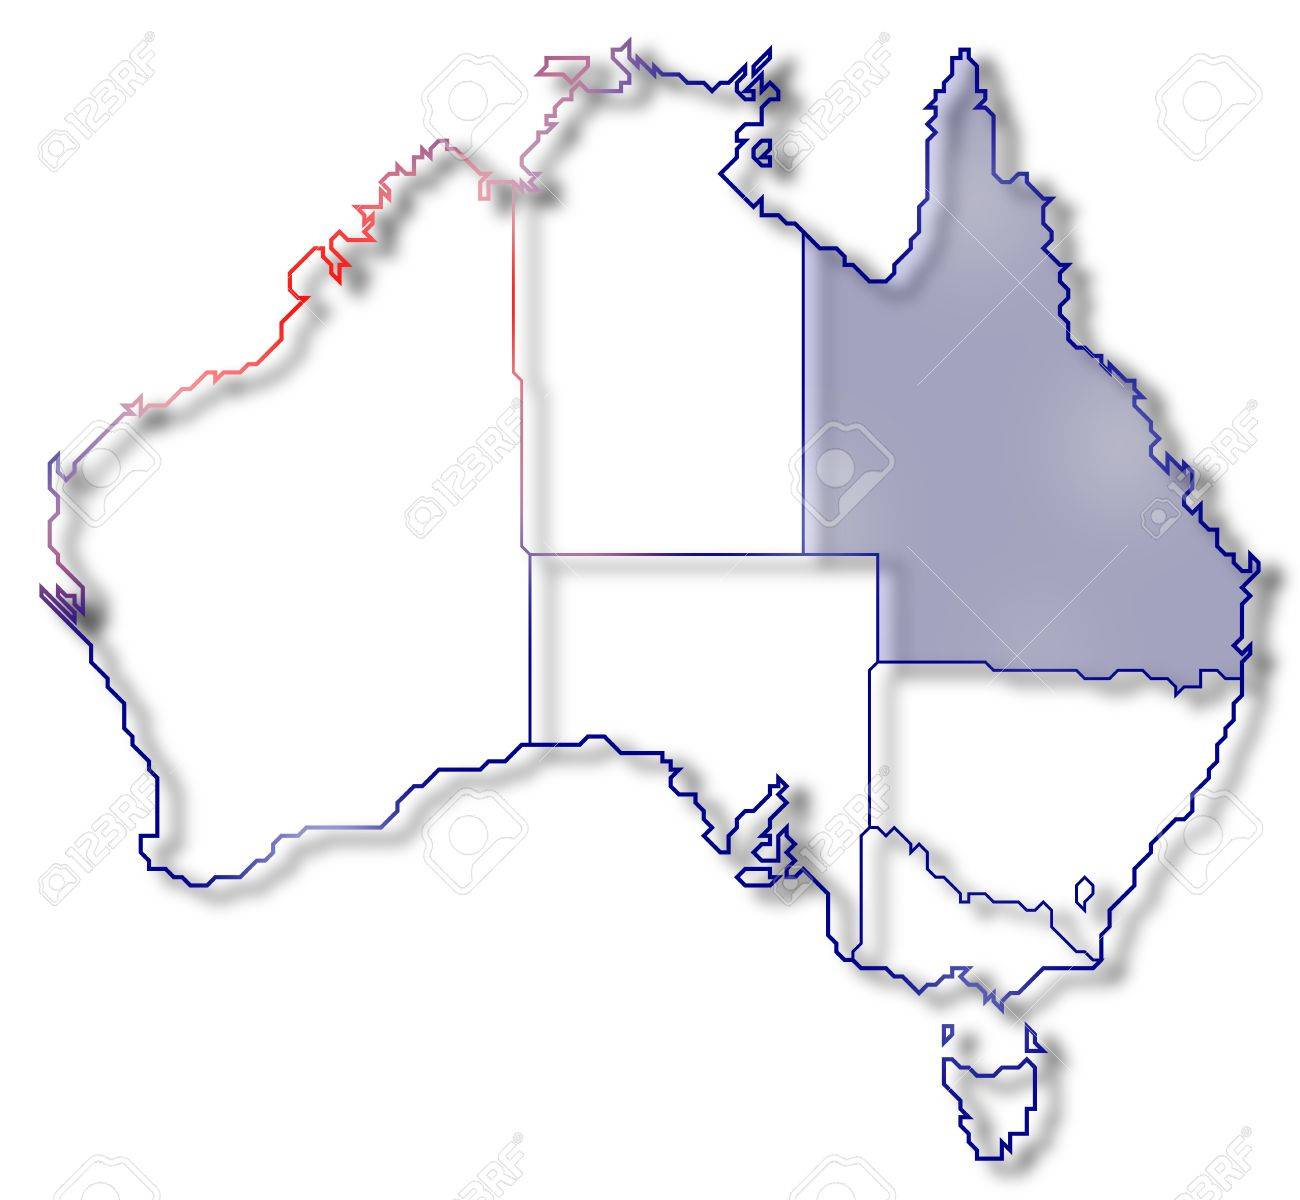 Map Of Australia Highlighting Queensland.Political Map Of Australia With The Several States Where Queensland